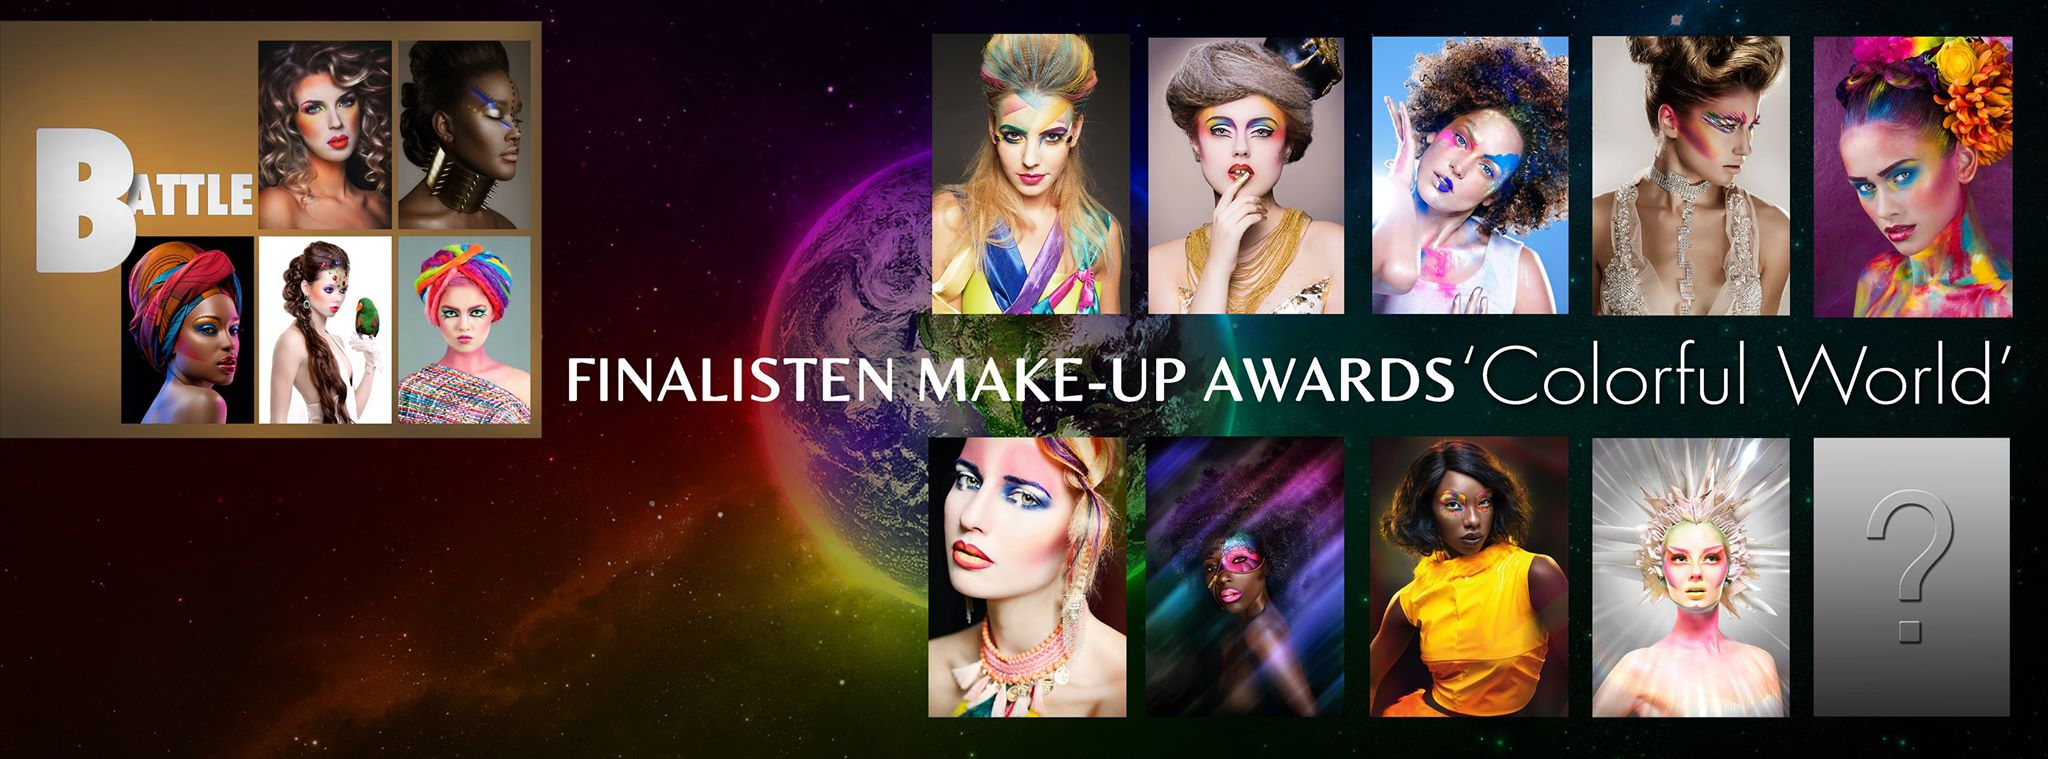 Foto op de site van de Make up awards - Blog Carine Belzon Fotografie